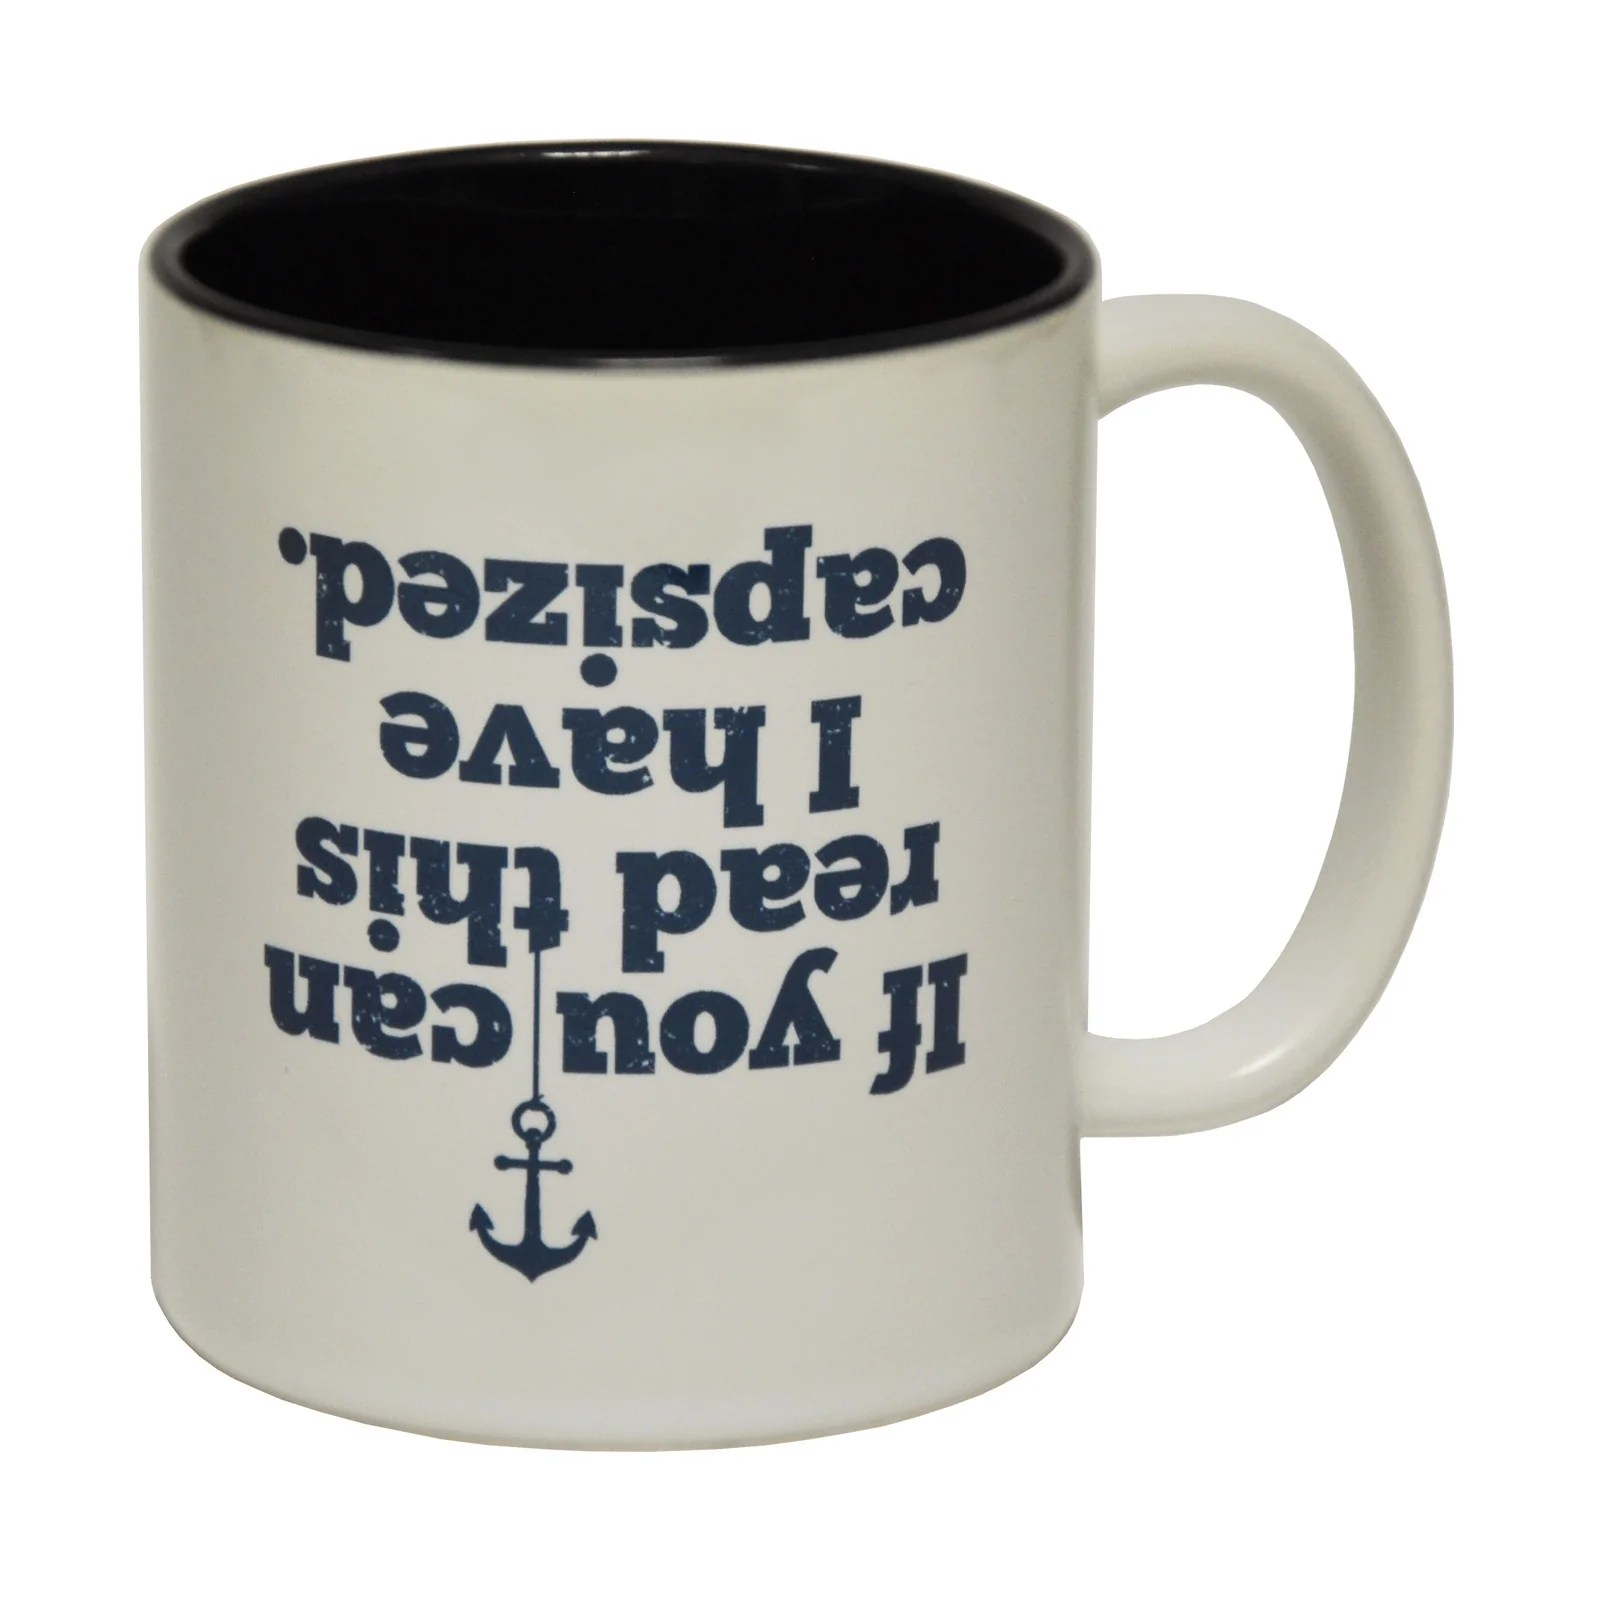 Weird Mugs Funny Sailing Gift Mugs Capsized Coffee Mug Novelty